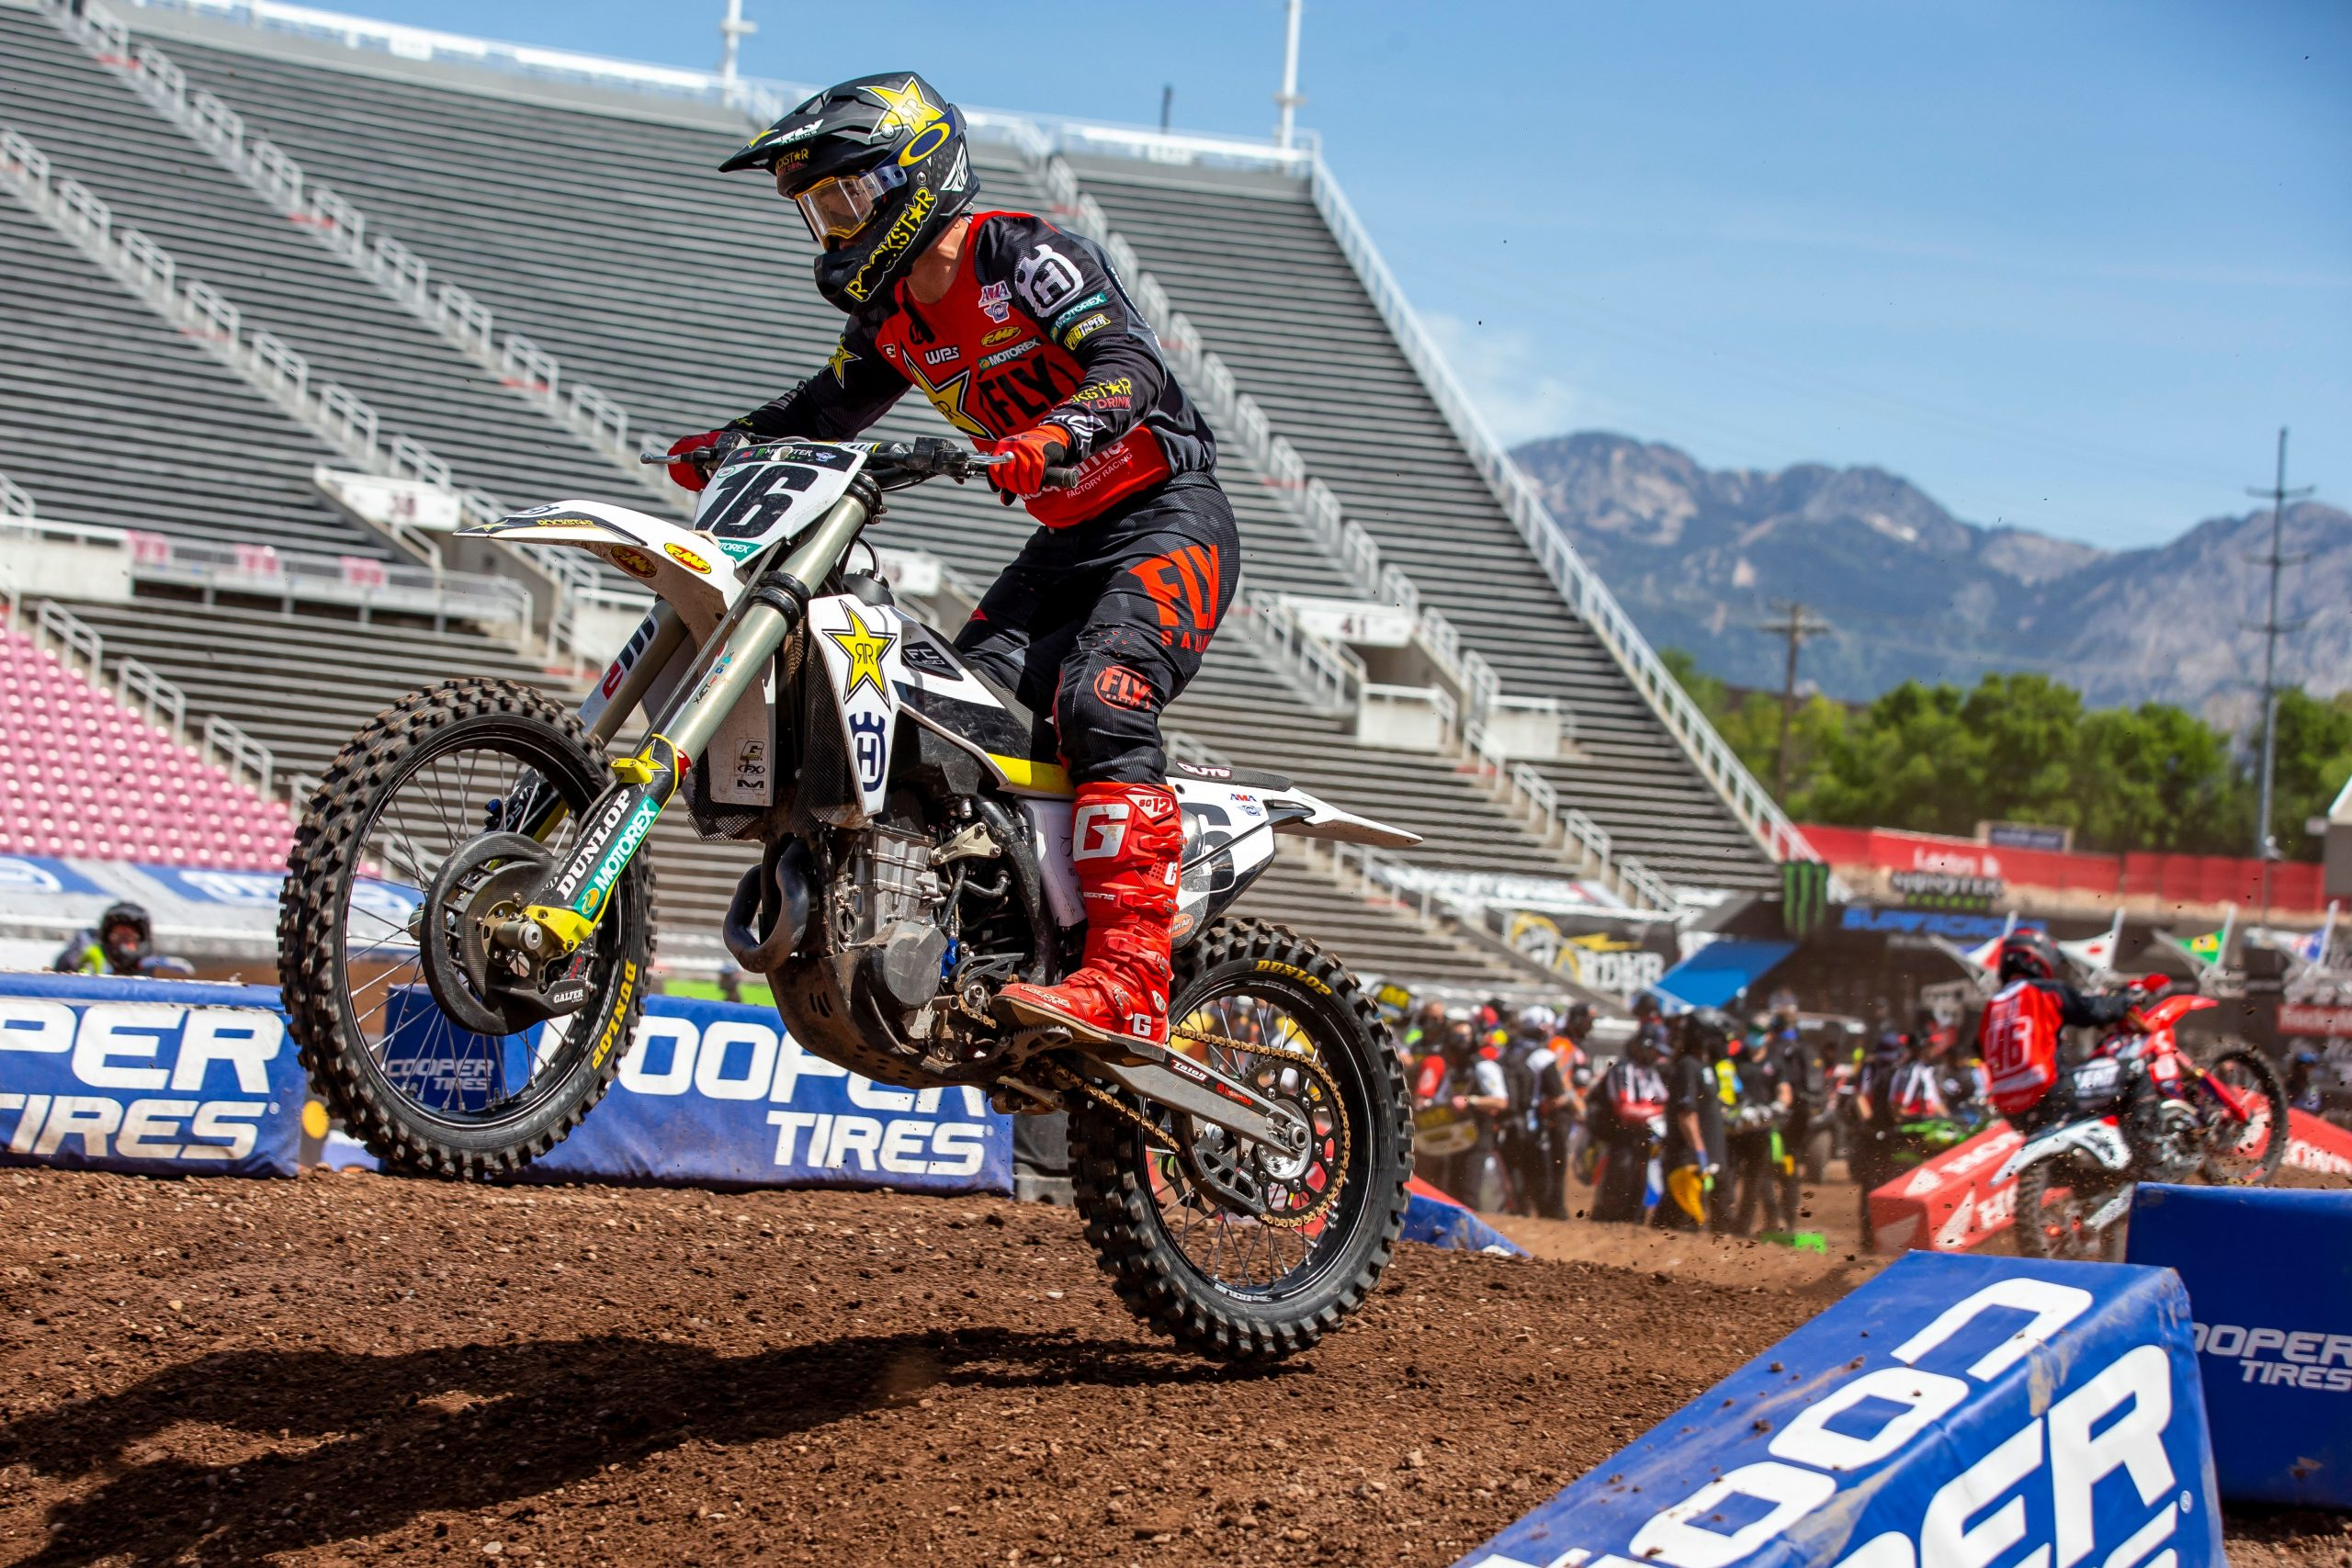 Supercross rider over dirt table action